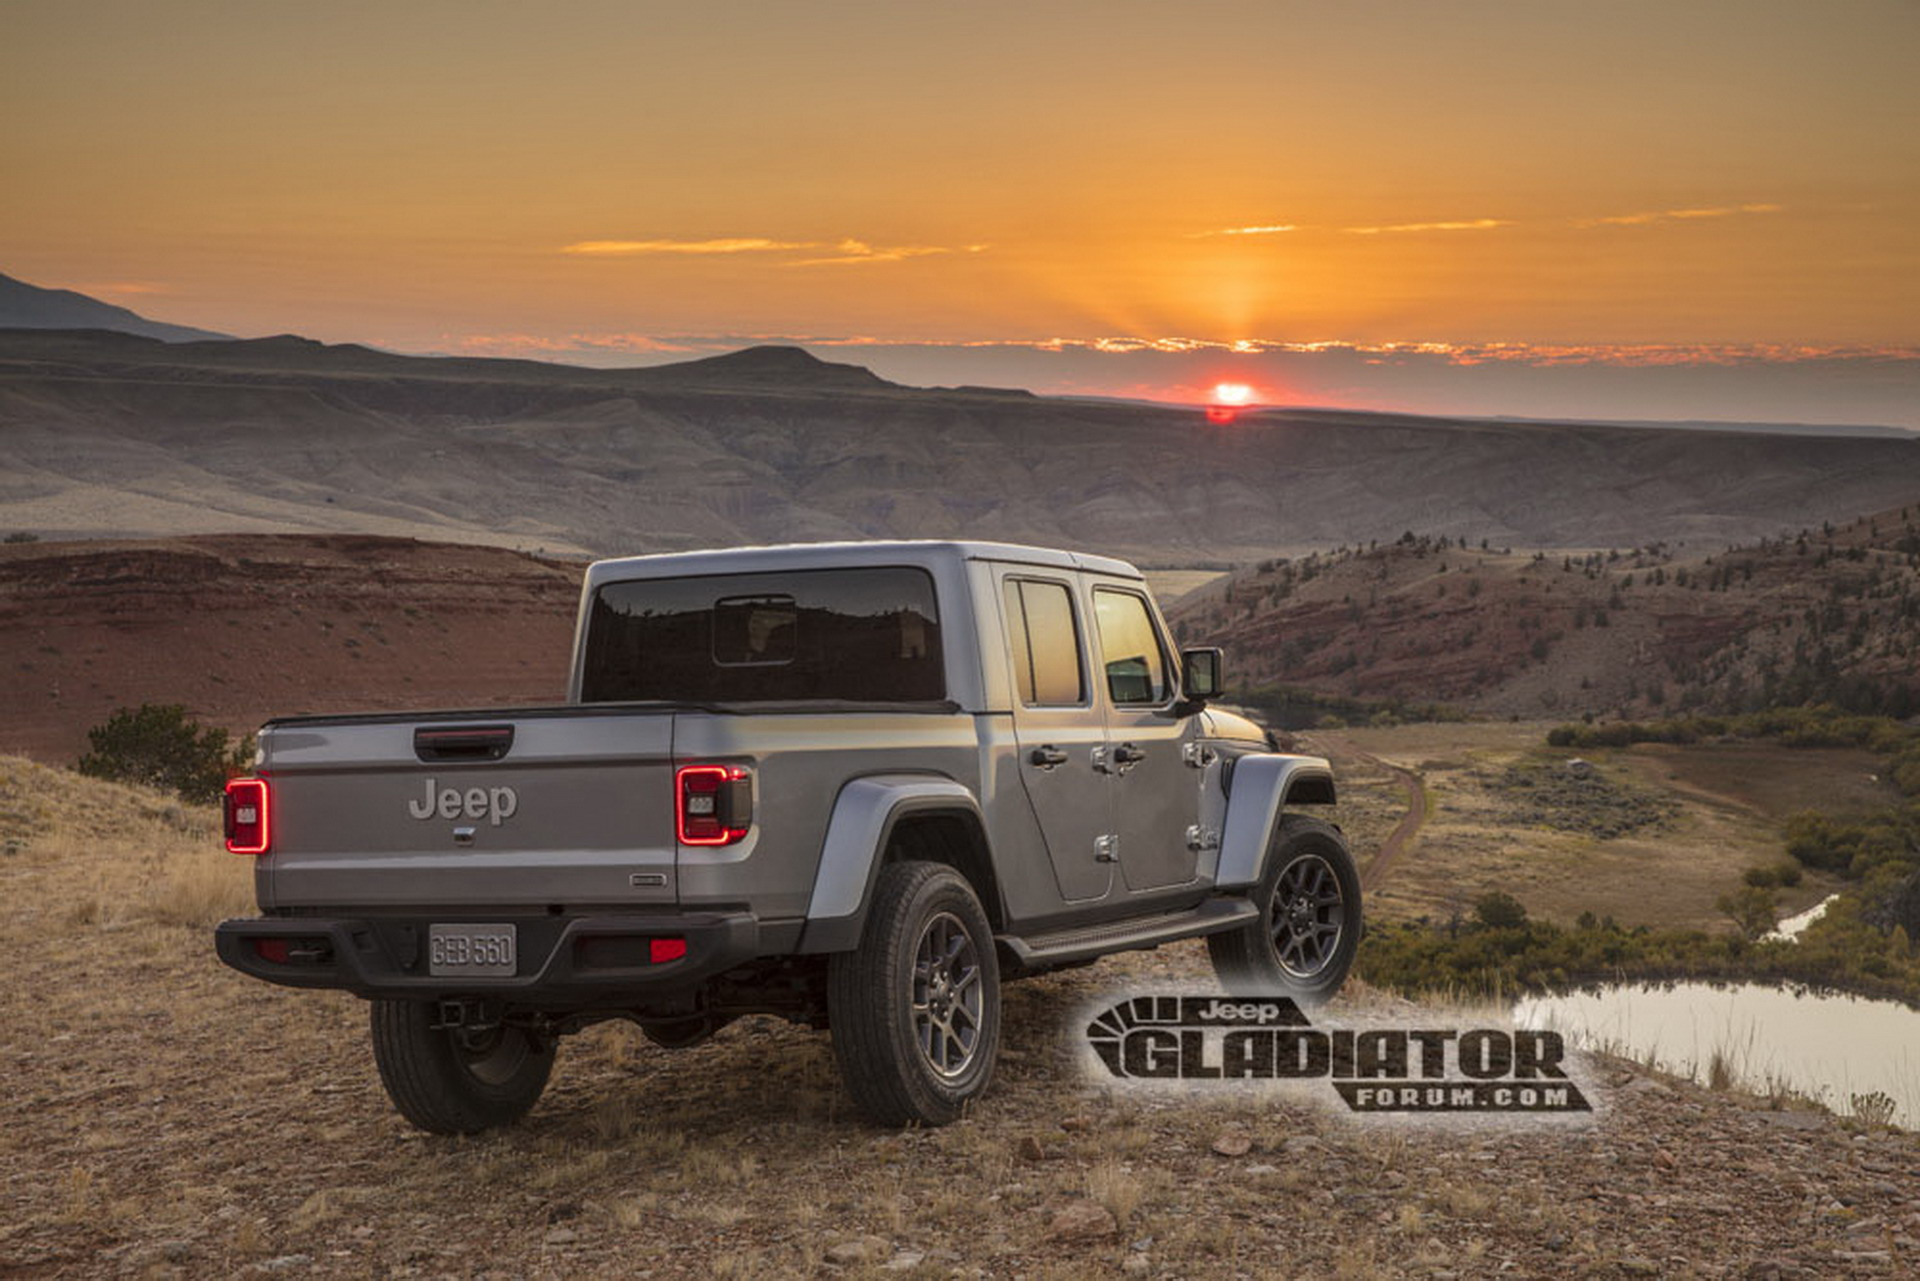 Jeep Gladiator pickup photos and specs leak ahead of debut